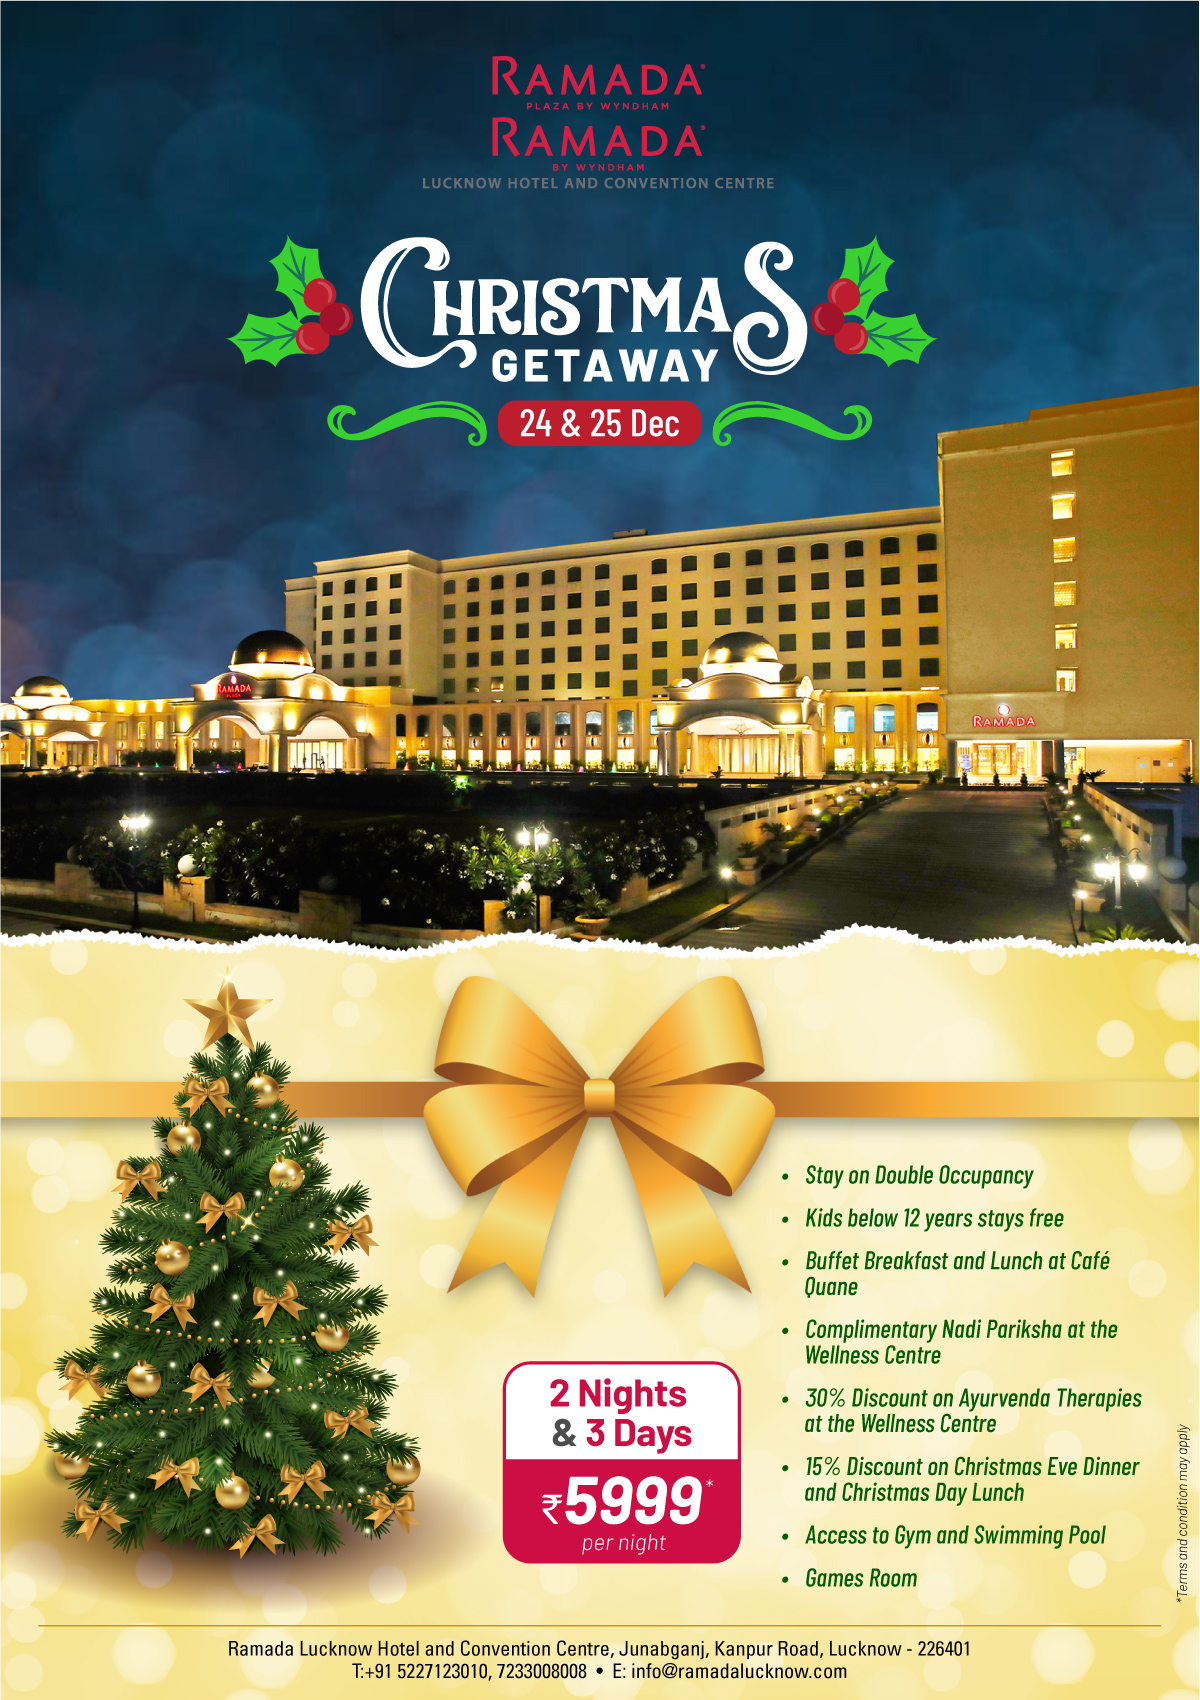 Christmas Package 2019 The Best X'mas Hotel Room Offer on Lucknow